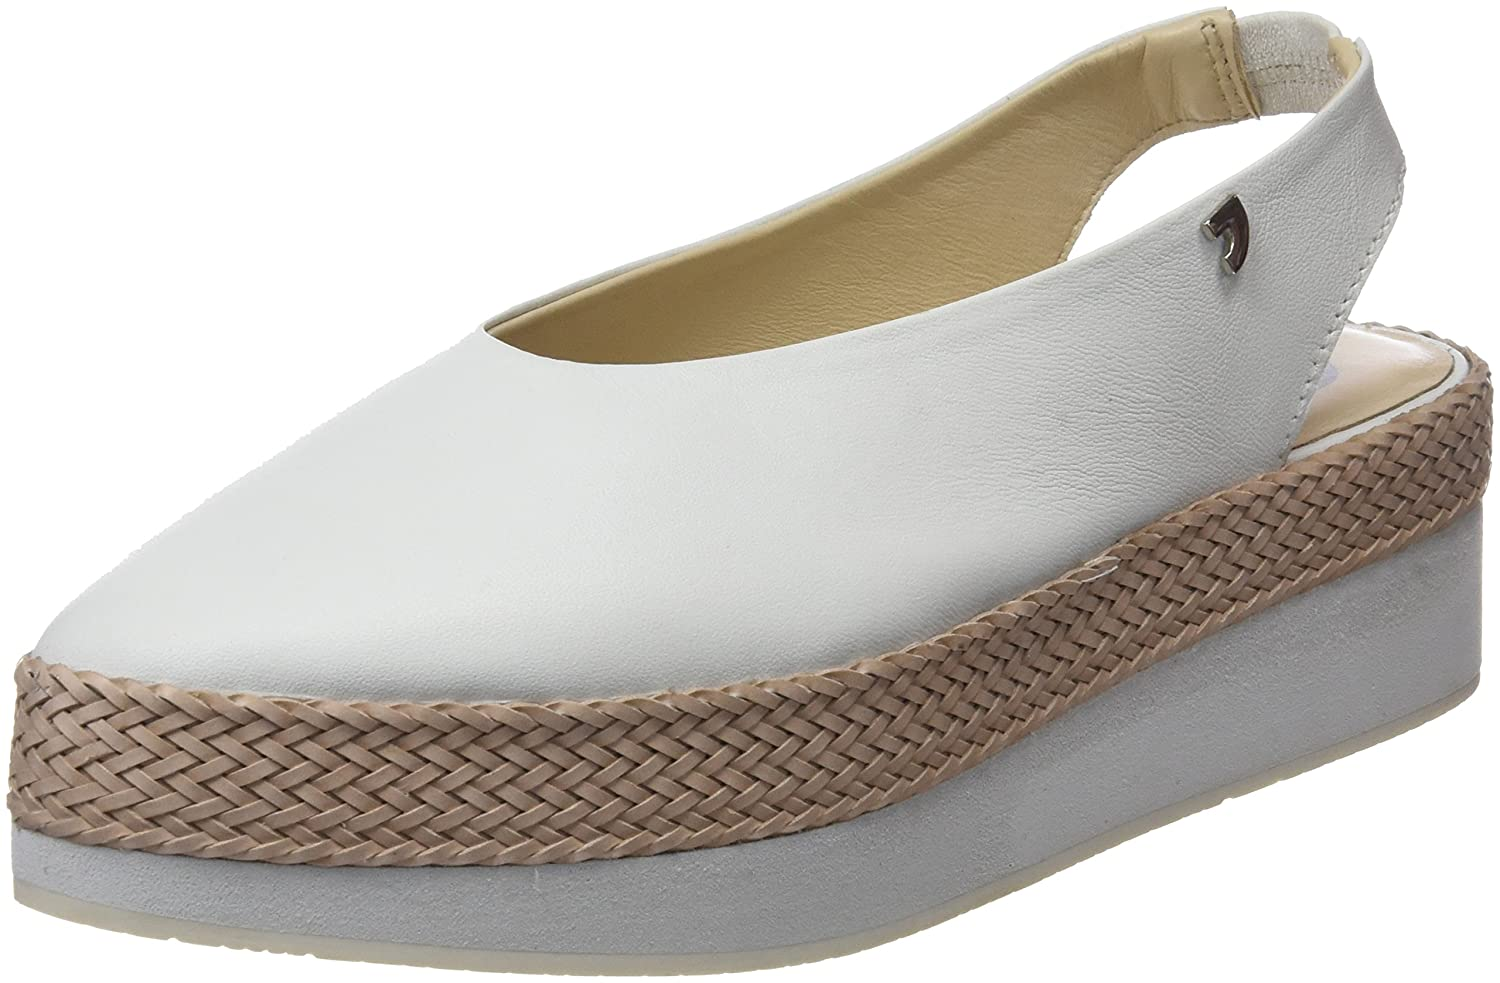 Chaussures Hummel Stadil roses Casual femme ZsTFra